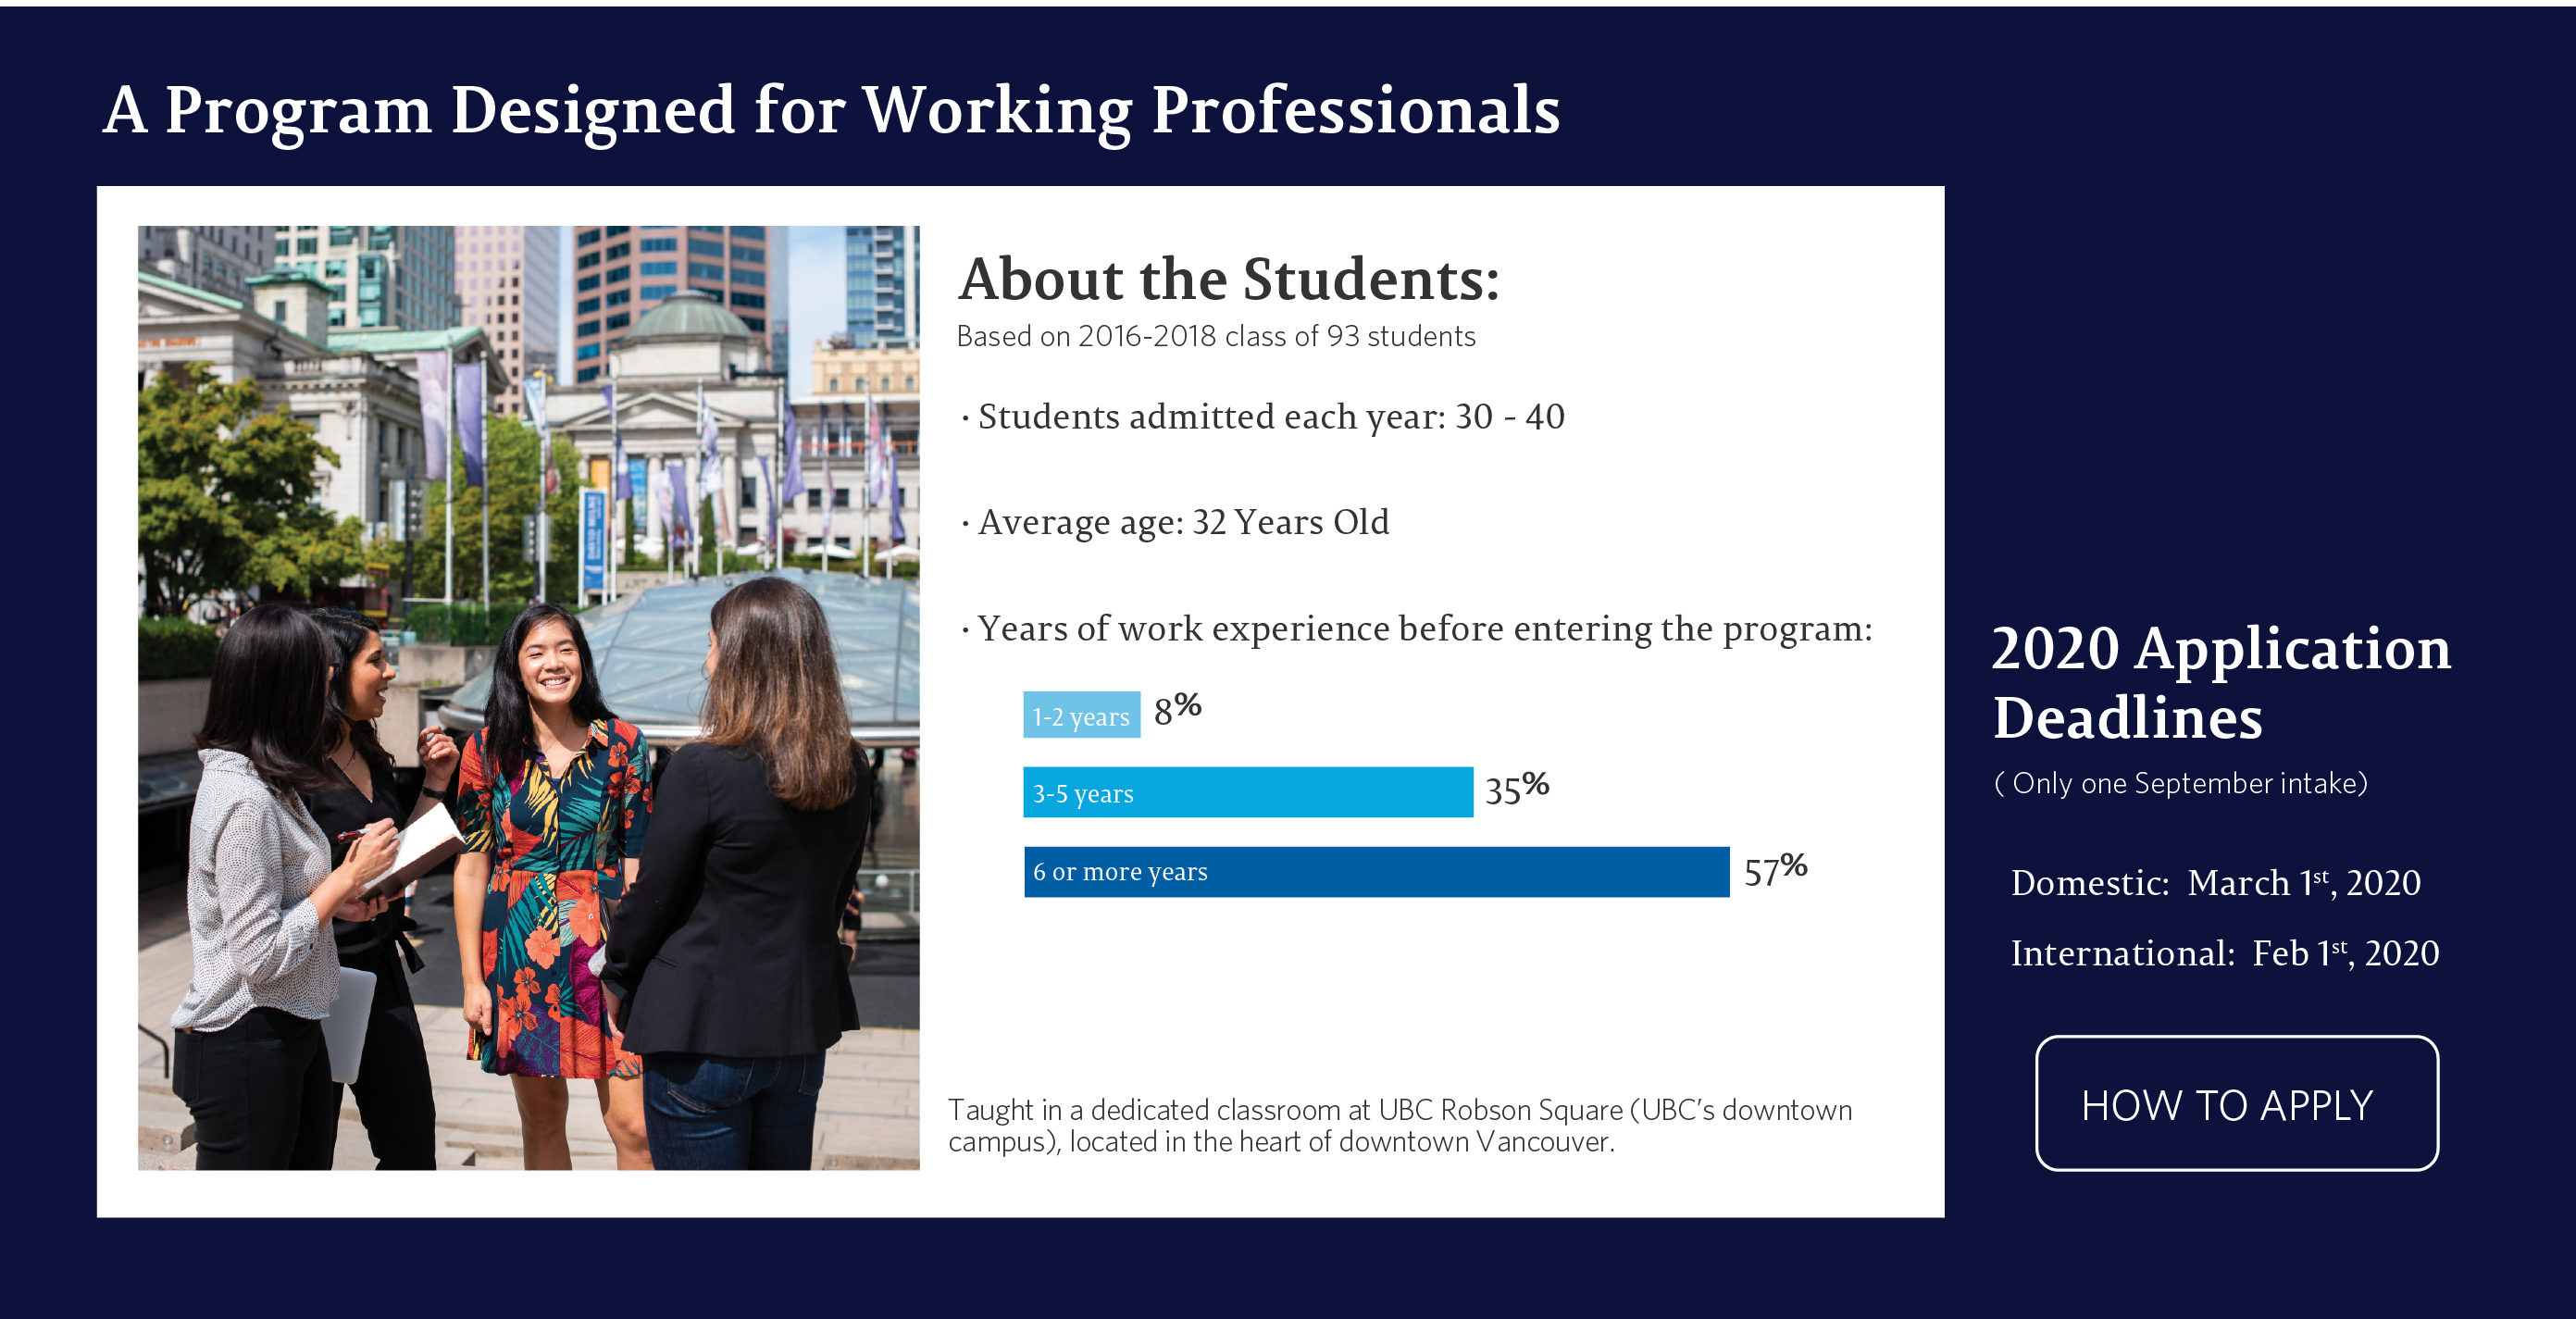 UBC Masters program student profile and graduate outcomes for health care professionals.